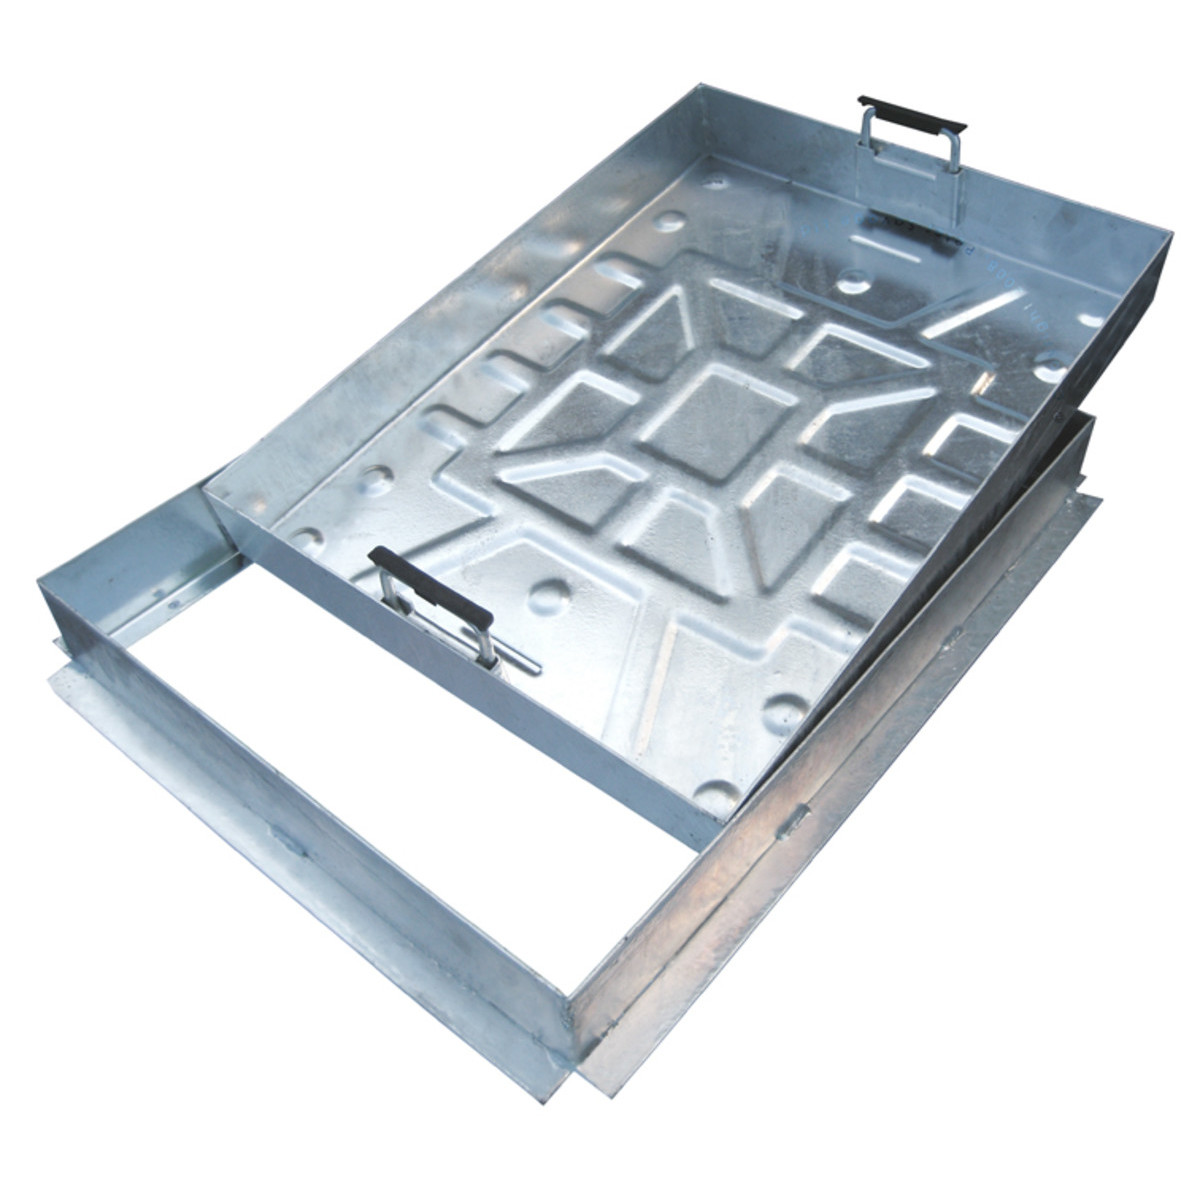 300 x 300mm Recessed Block Paver Cover (suit 60mm paving) - All Steel